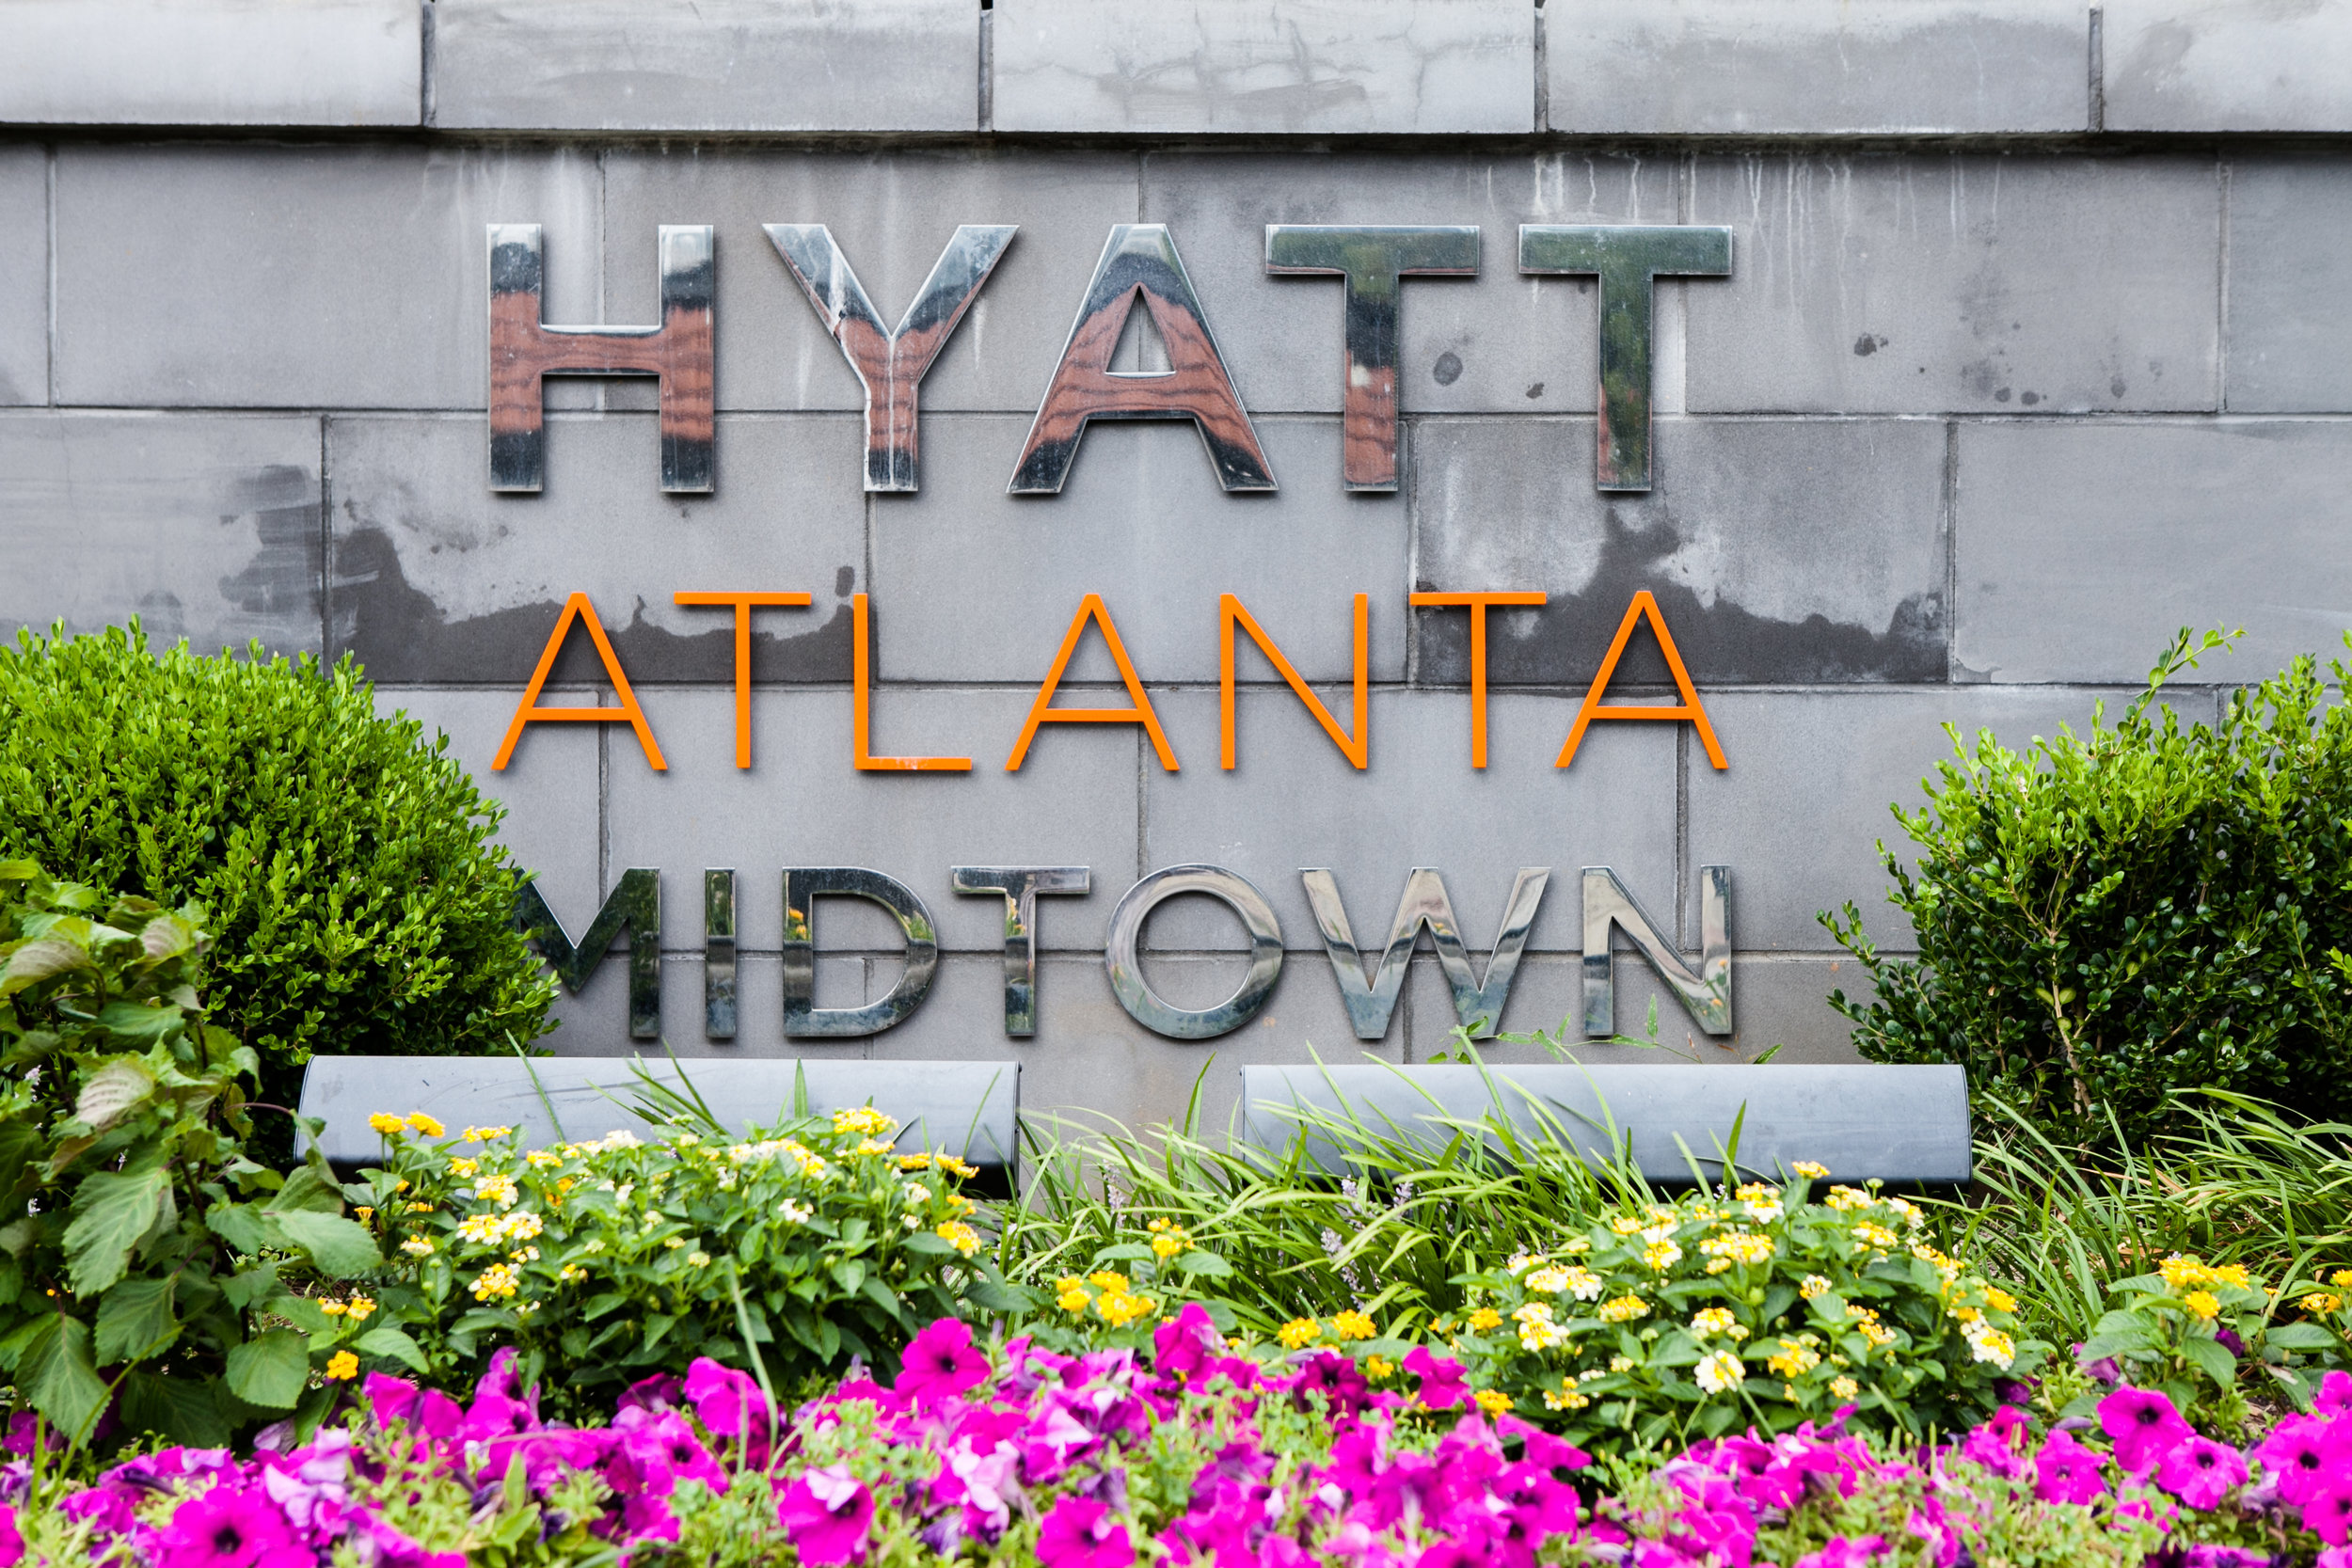 Hyatt Midtown Atlanta: Image Courtesy of  Ross Oscar Knight Photography